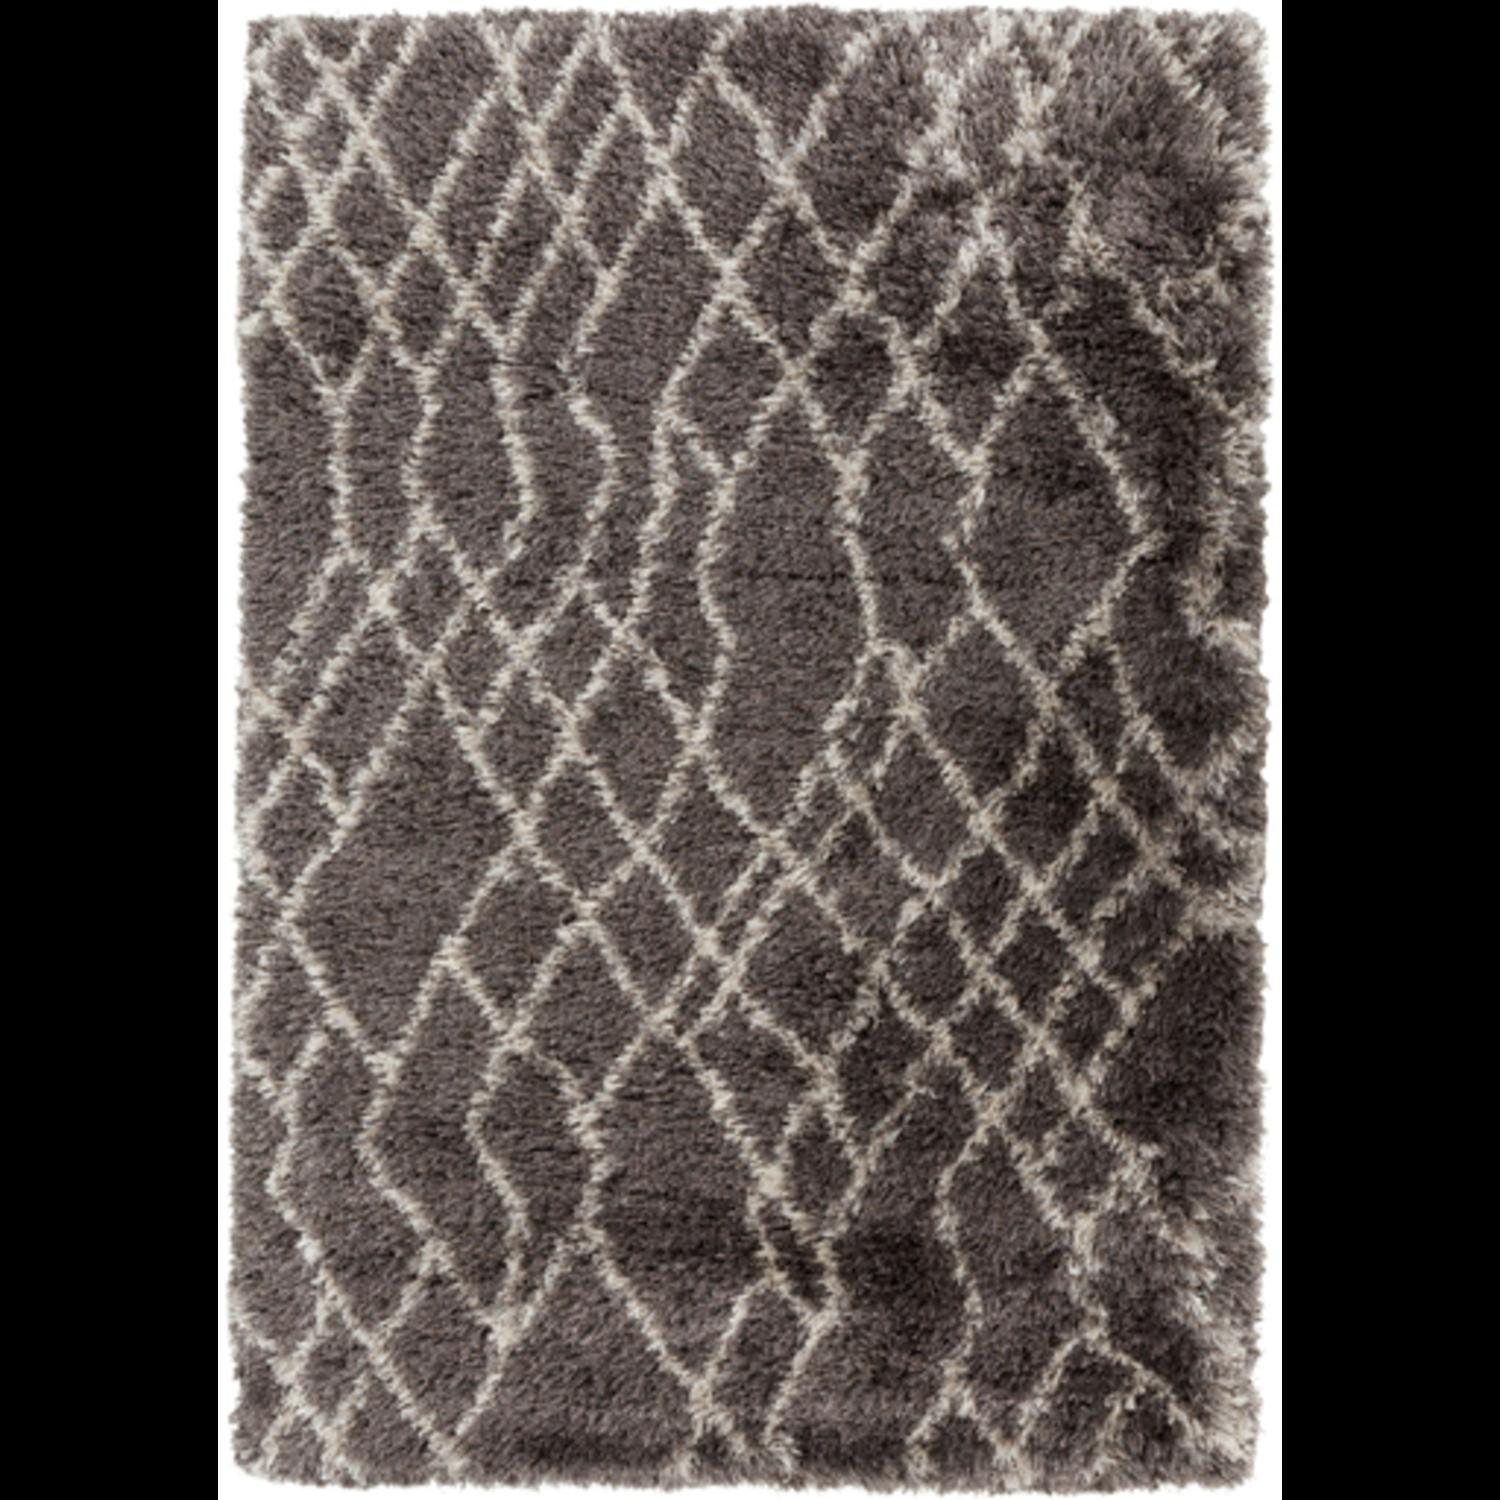 5' x 8' Nearly Diamond Dark Brown and Cream Hand Woven Wool Area Throw Rug